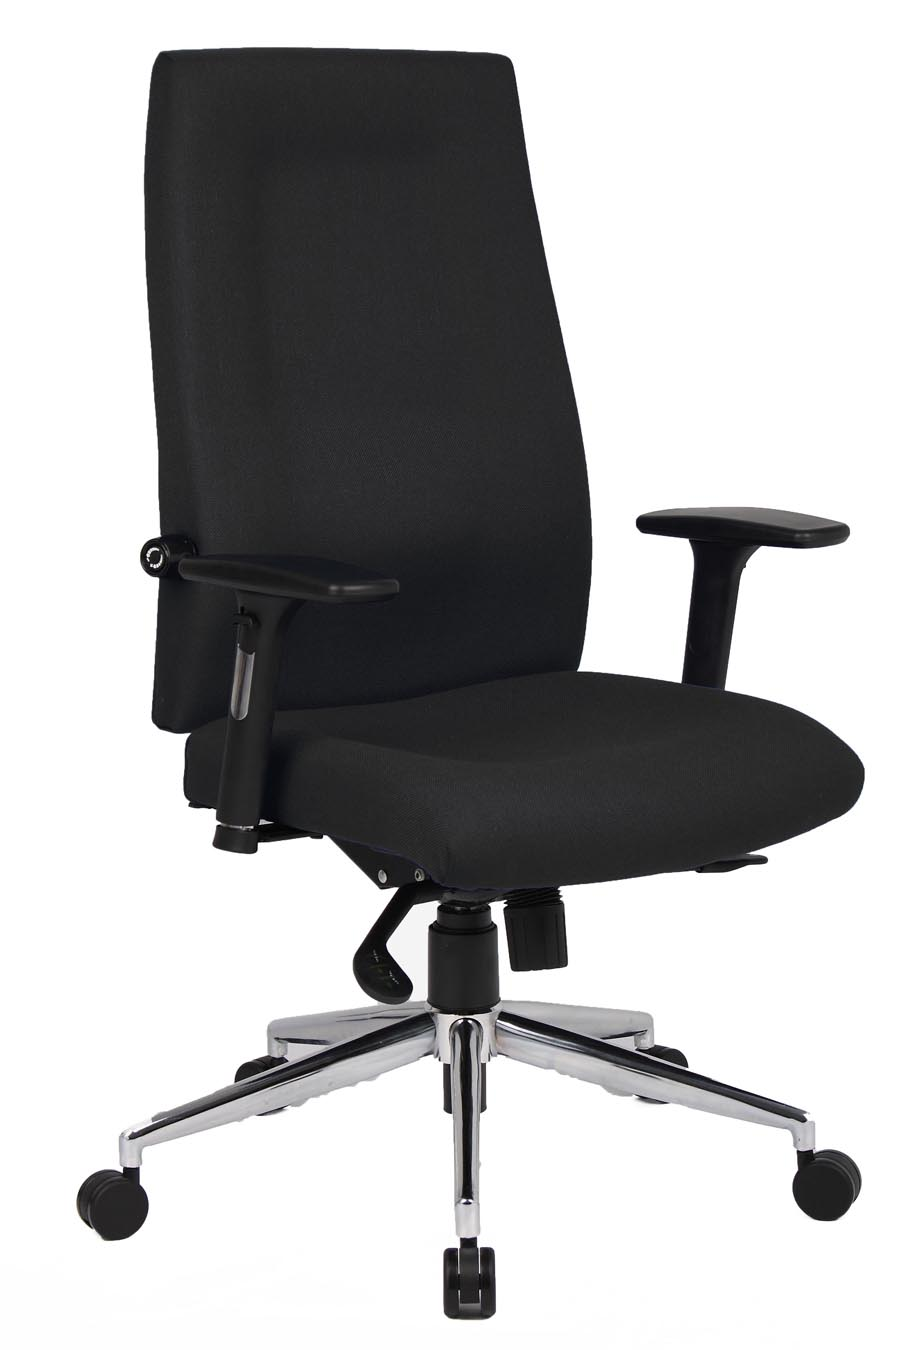 24 Hour Office Chairs Mode 400 High Back Heavy Duty 24 Hour Office Chair